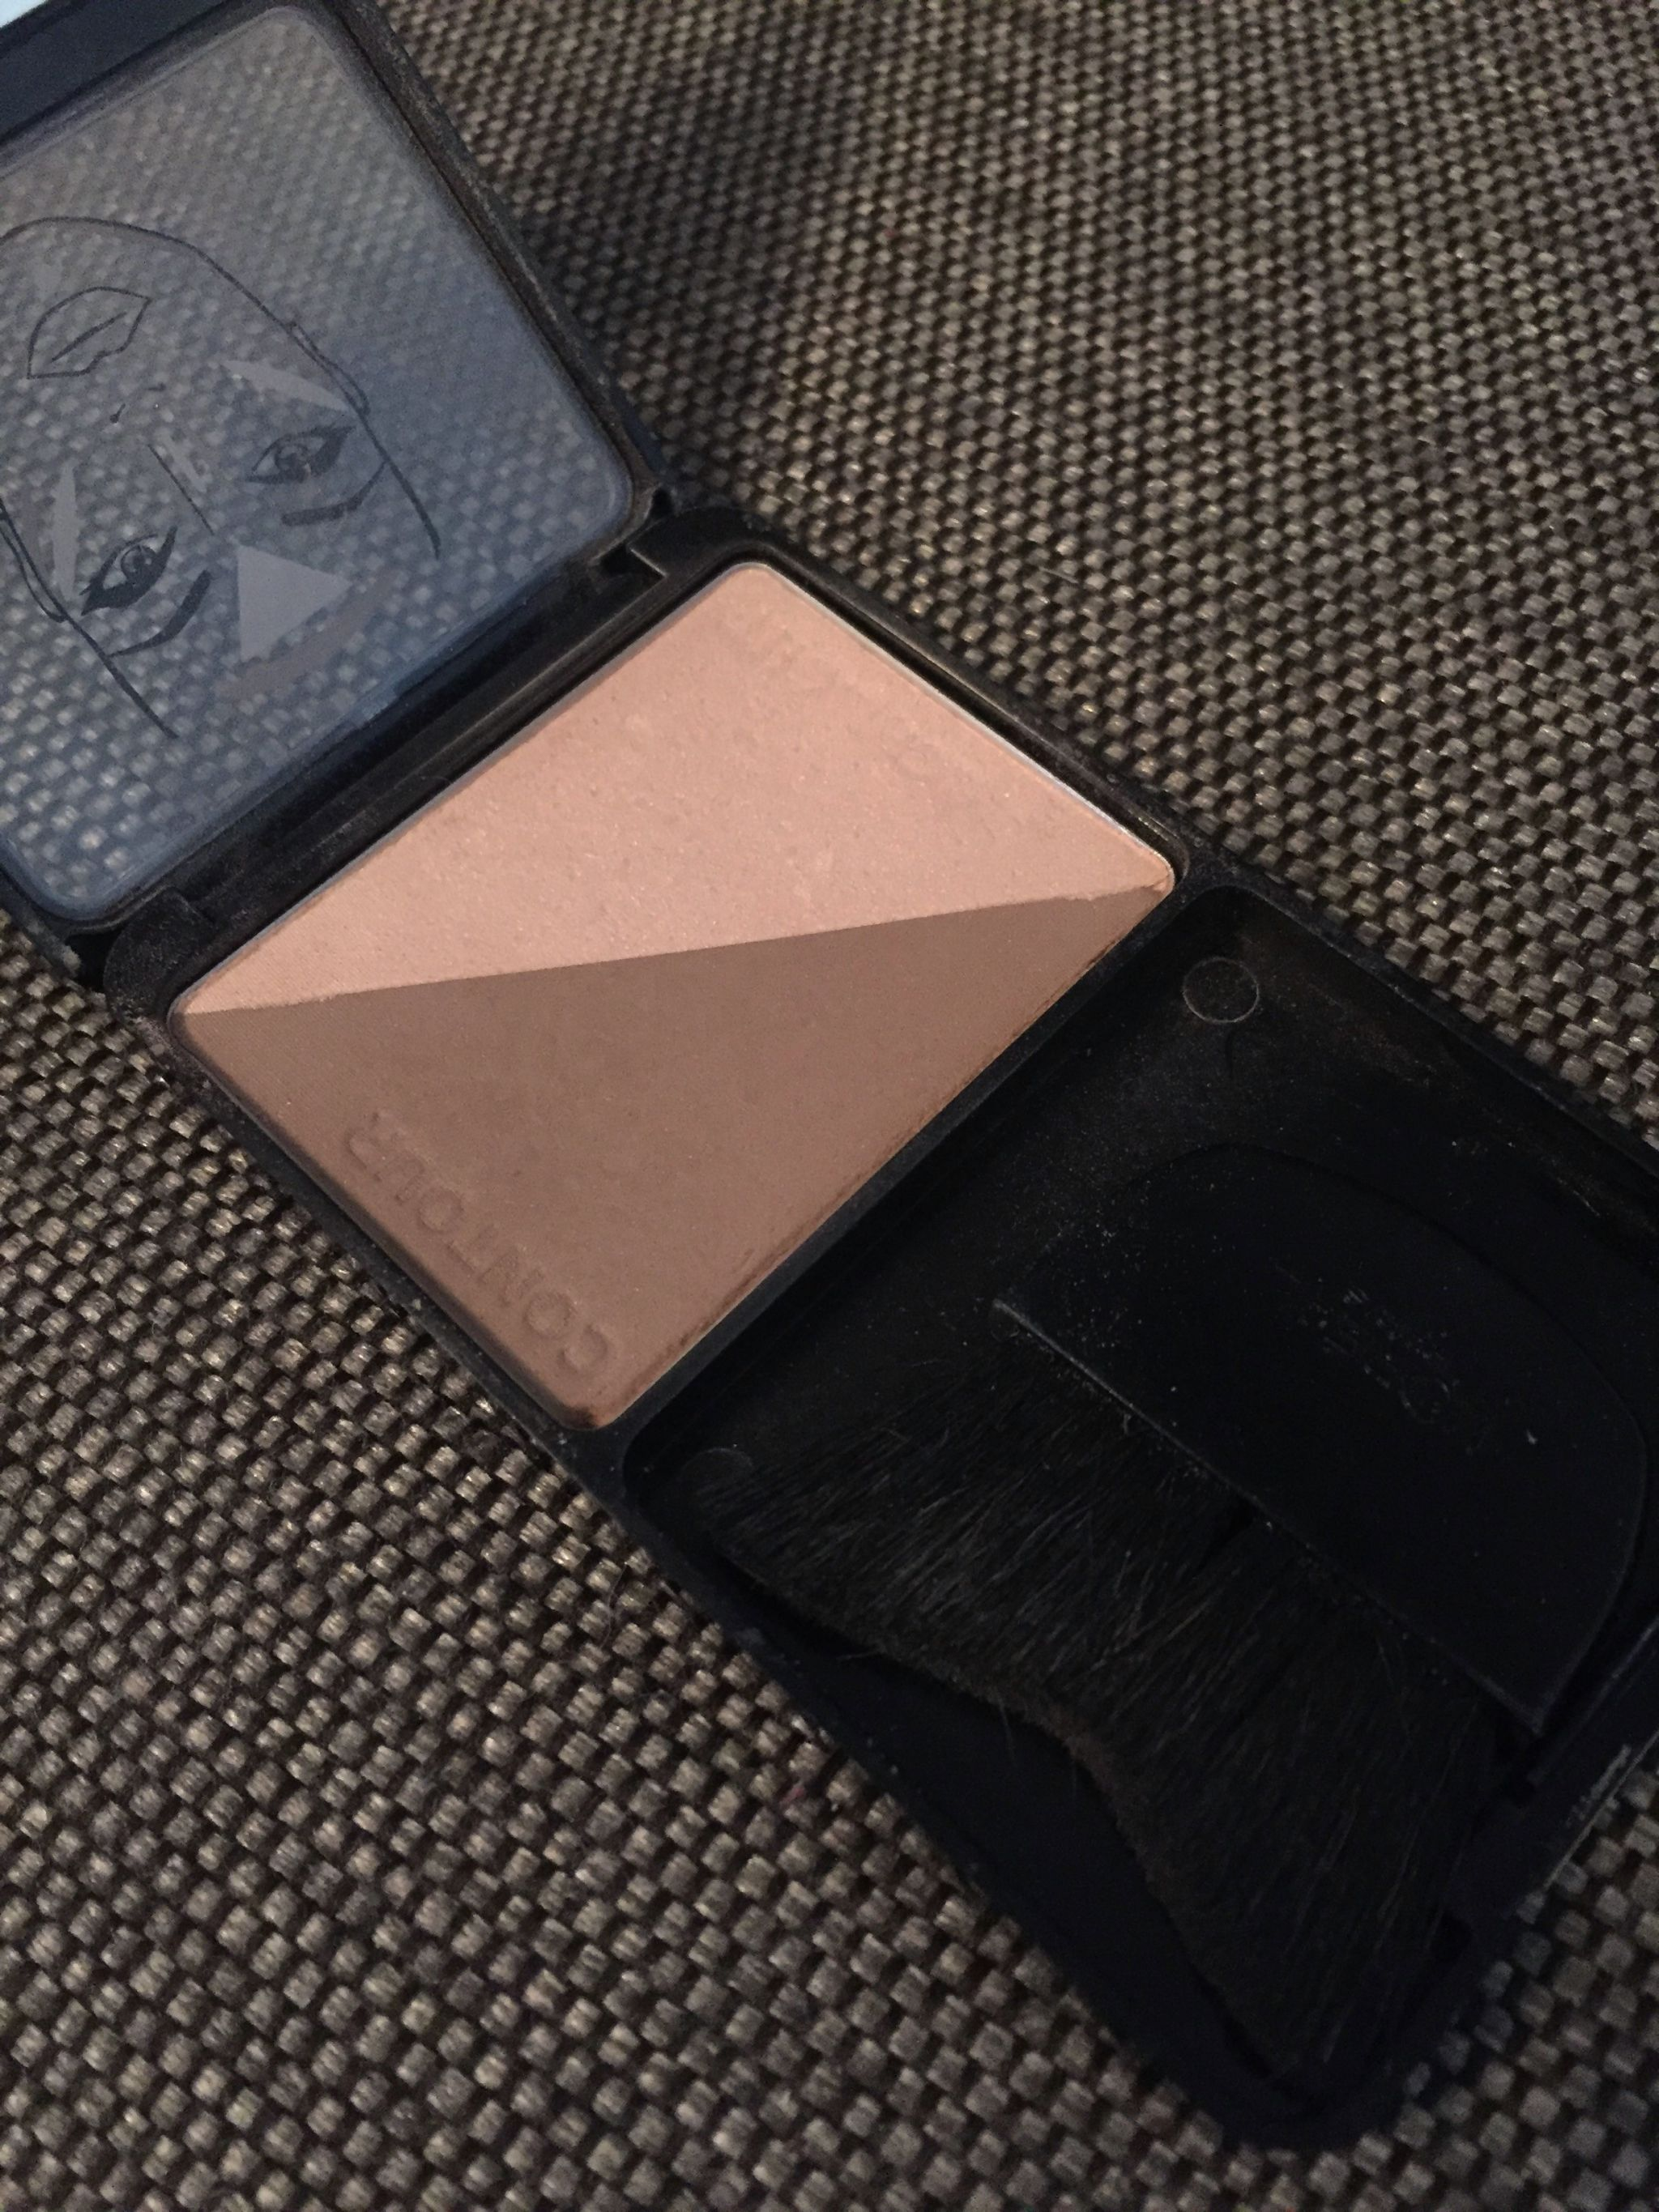 favorite beauty products l'oreal infallible pro-contour palette kit